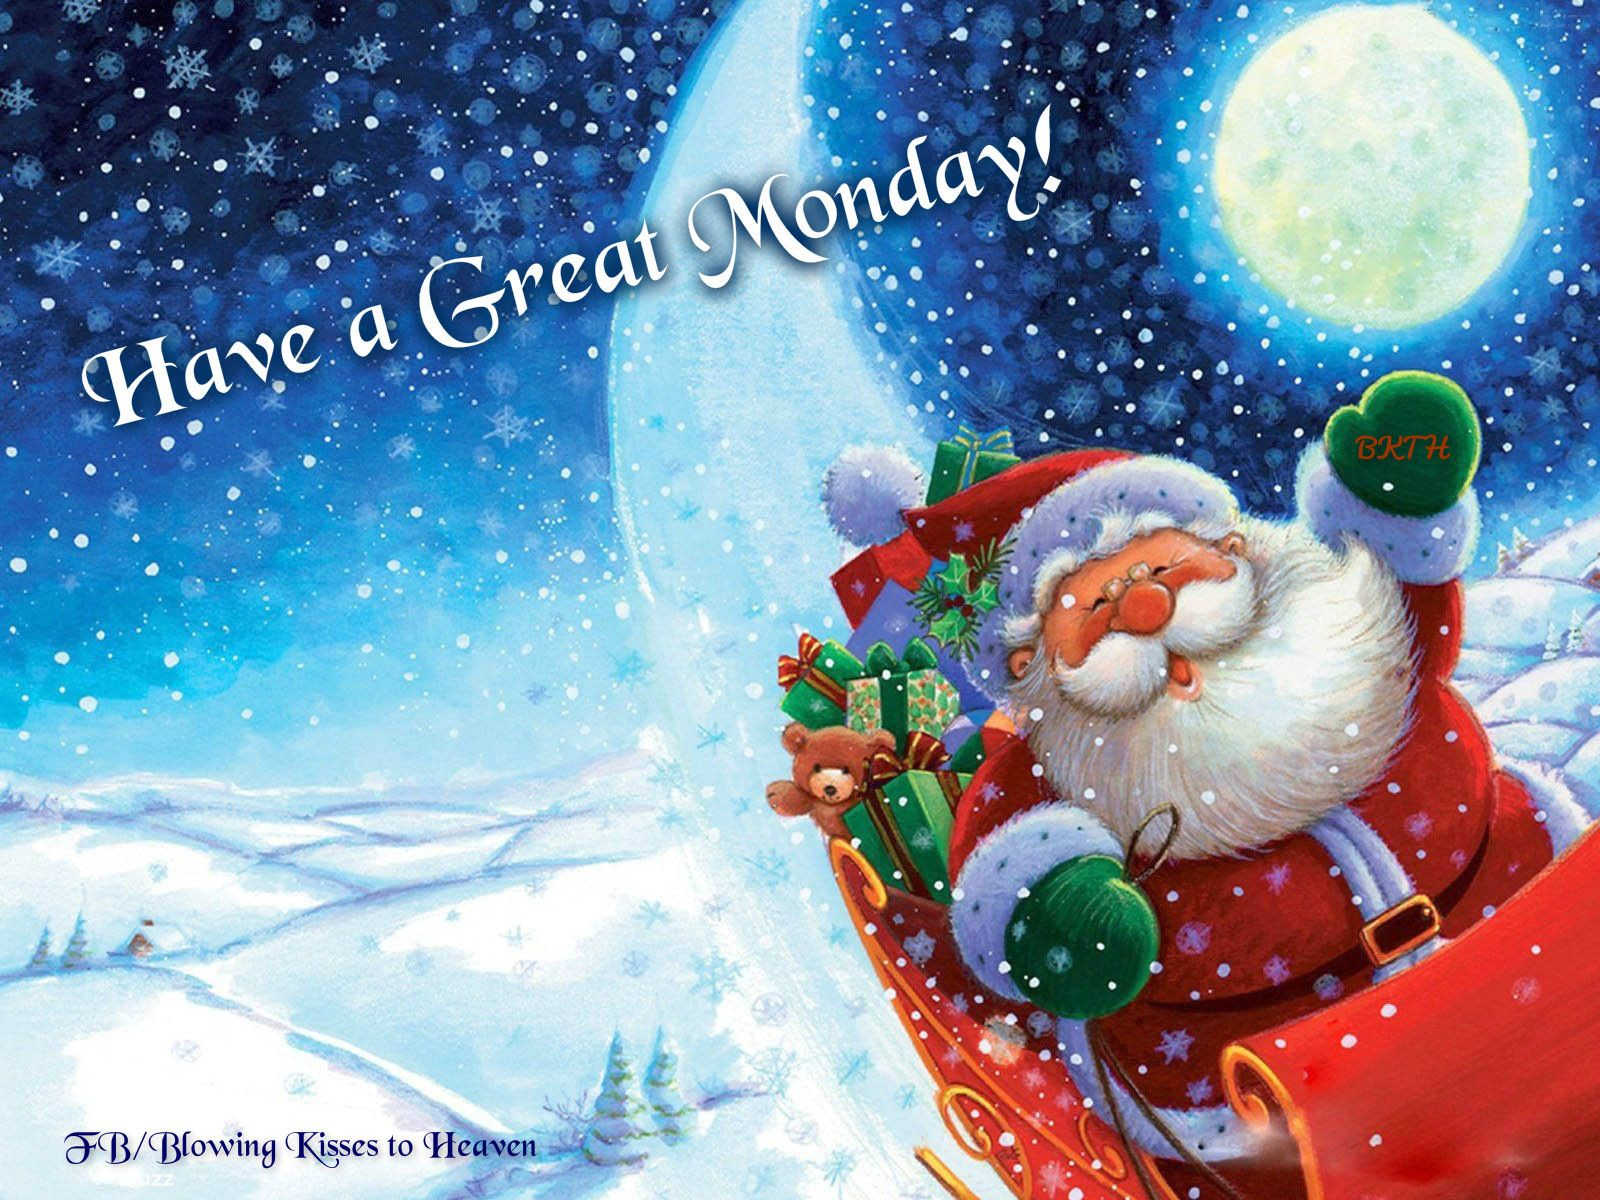 Have A Great Monday Santa Claus Wallpaper Cute Christmas Backgrounds Funny Christmas Wallpaper